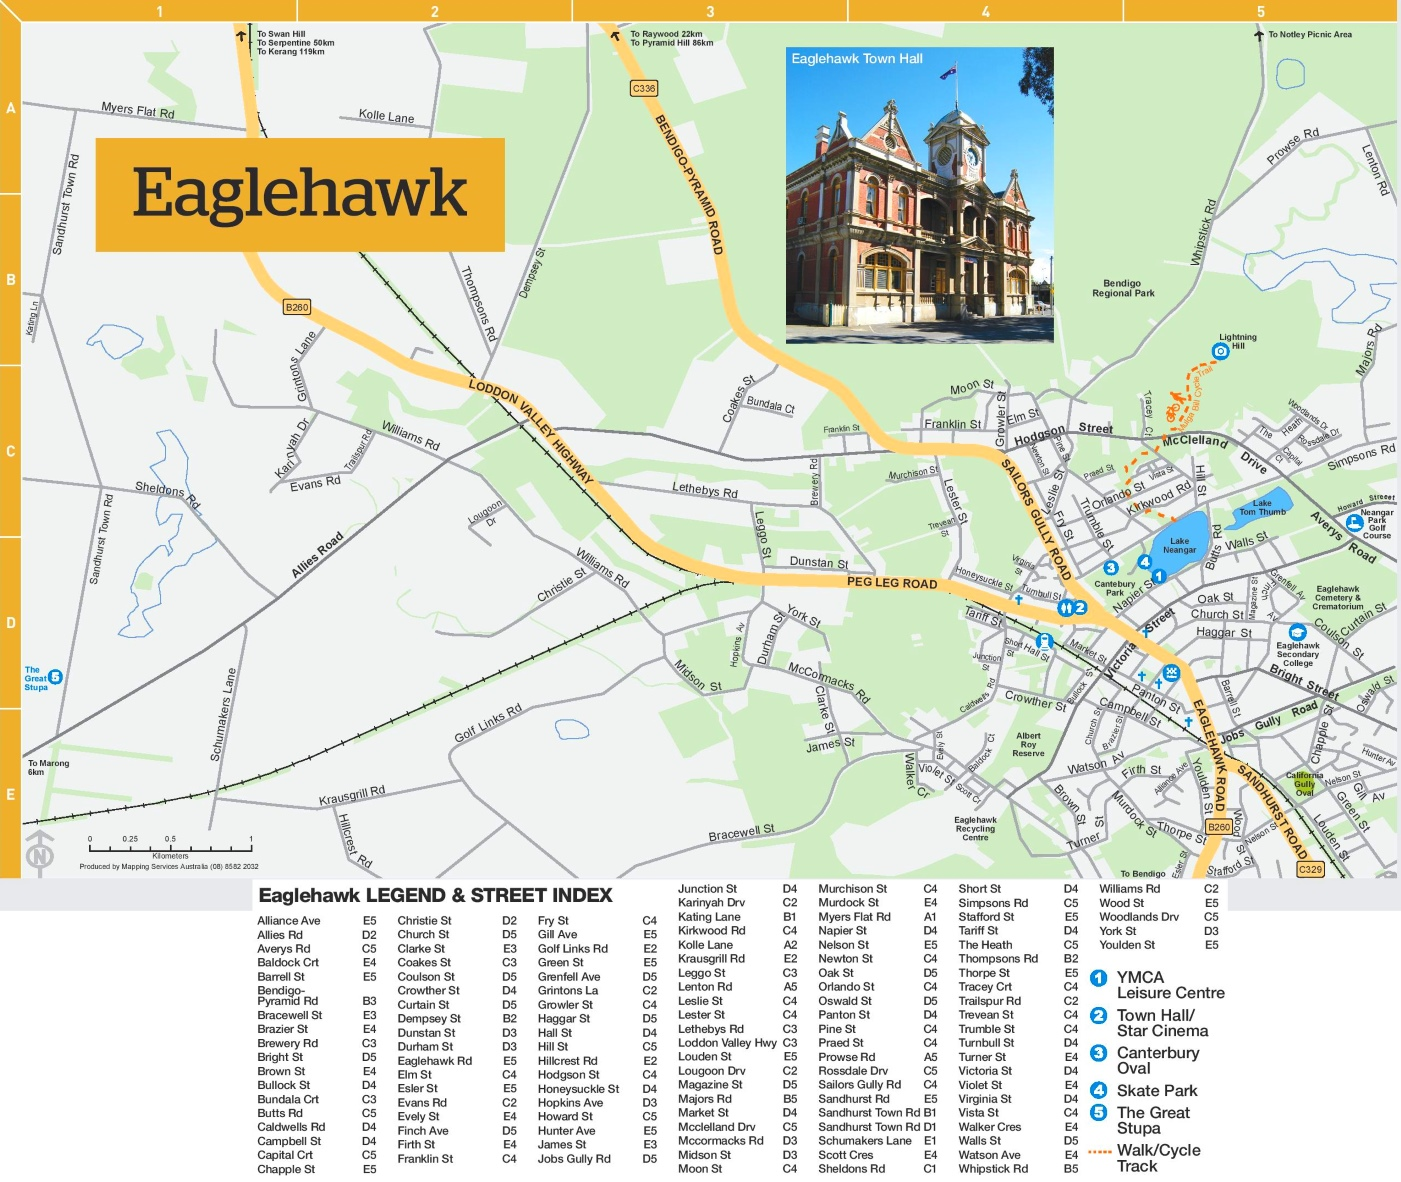 Eaglehawk map